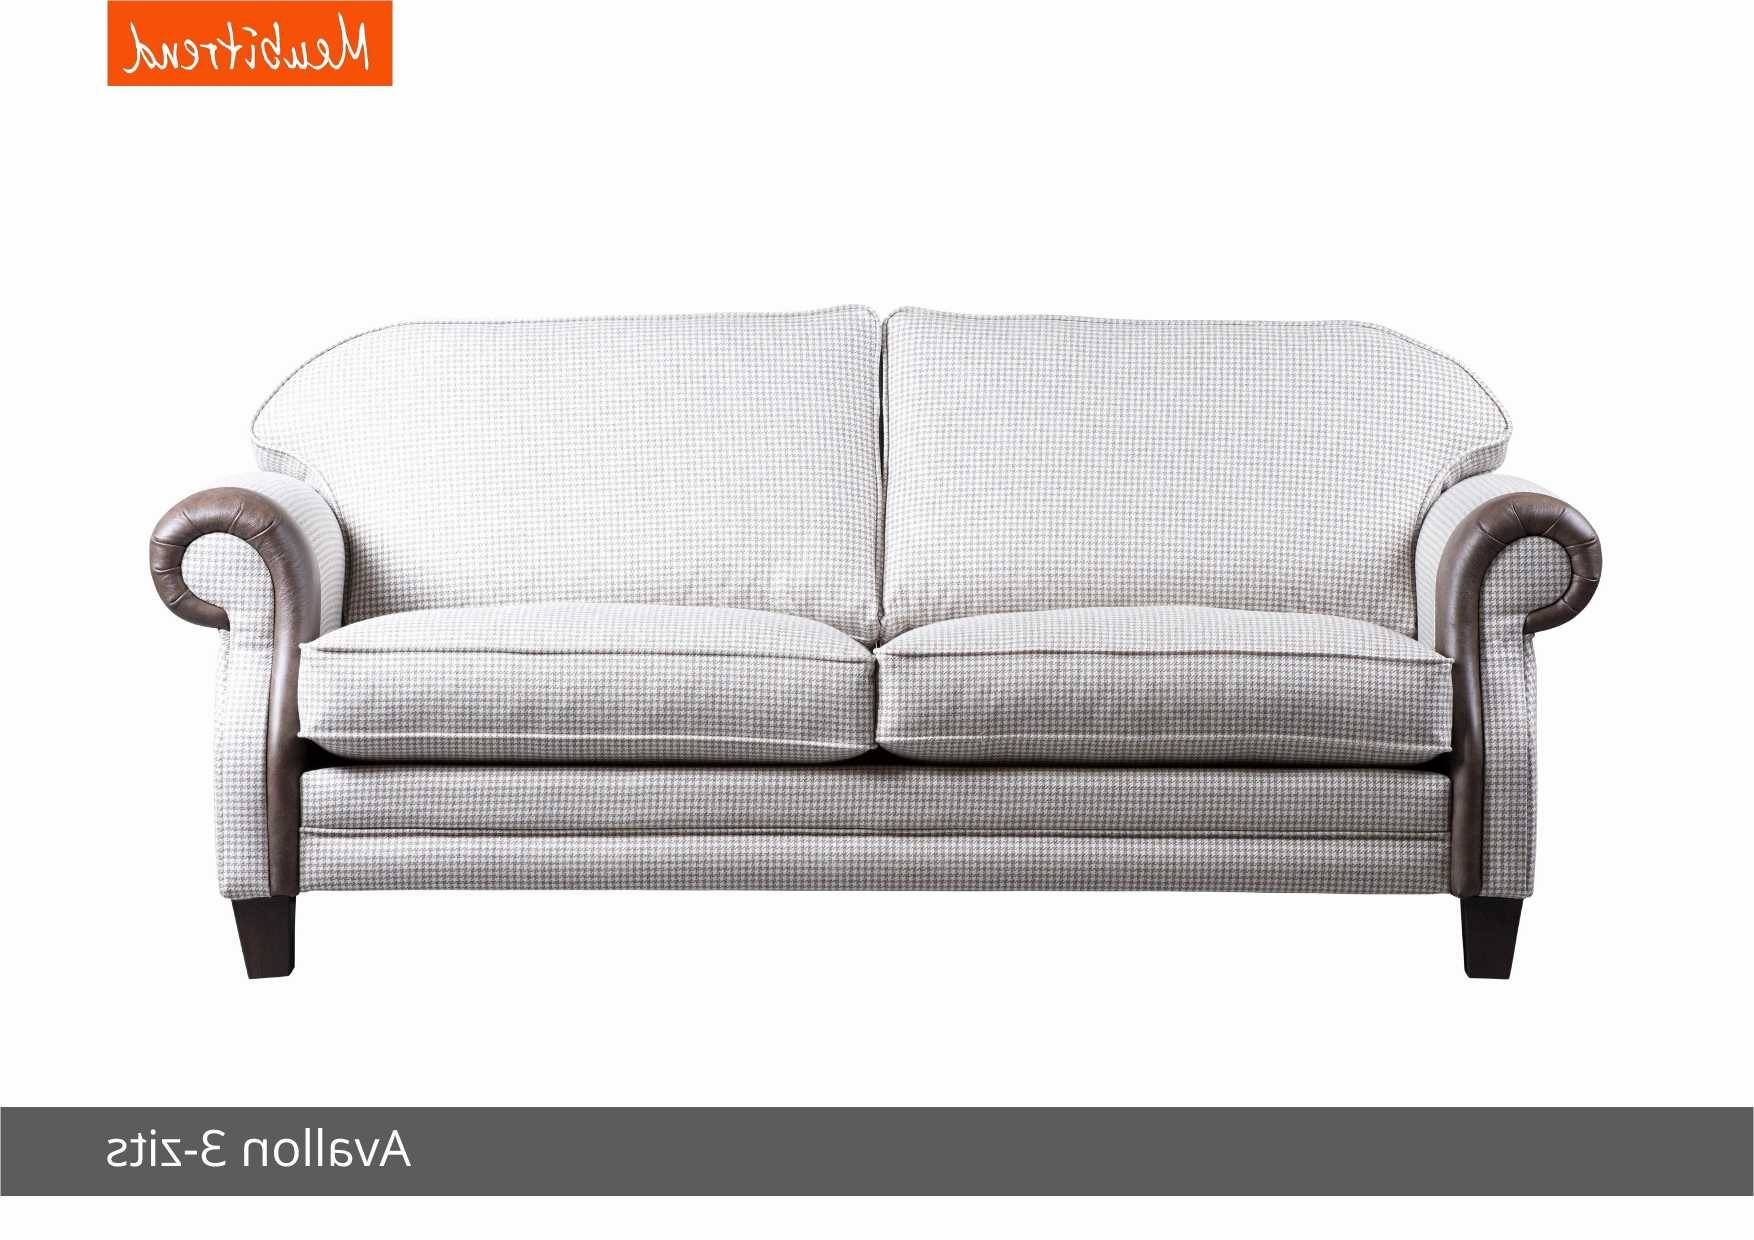 sears couch pillows of best of sears steam cleaning furniture furniture information in patio furniture swing hd patio swings best wicker outdoor sofa 0d patio chairs sale